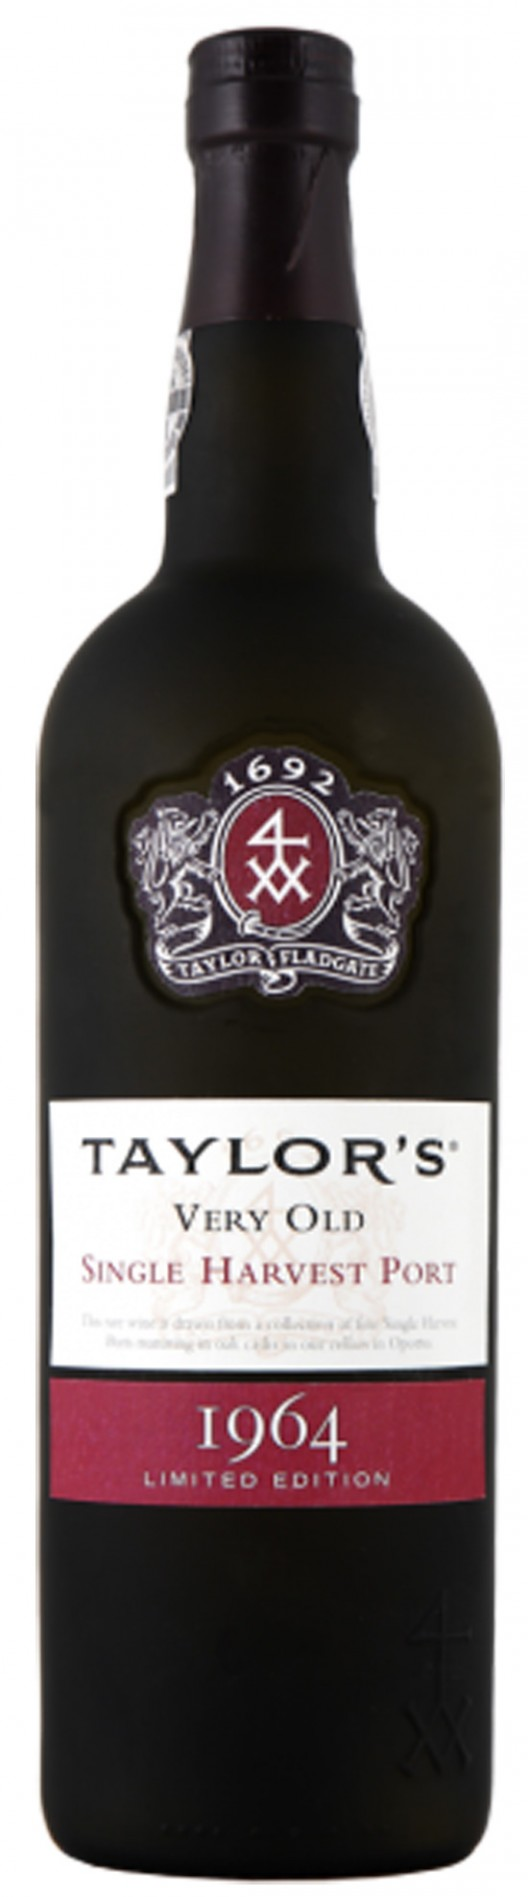 Taylor Fladgate Debuts Limited Edition 1964 Single Harvest Tawny Port